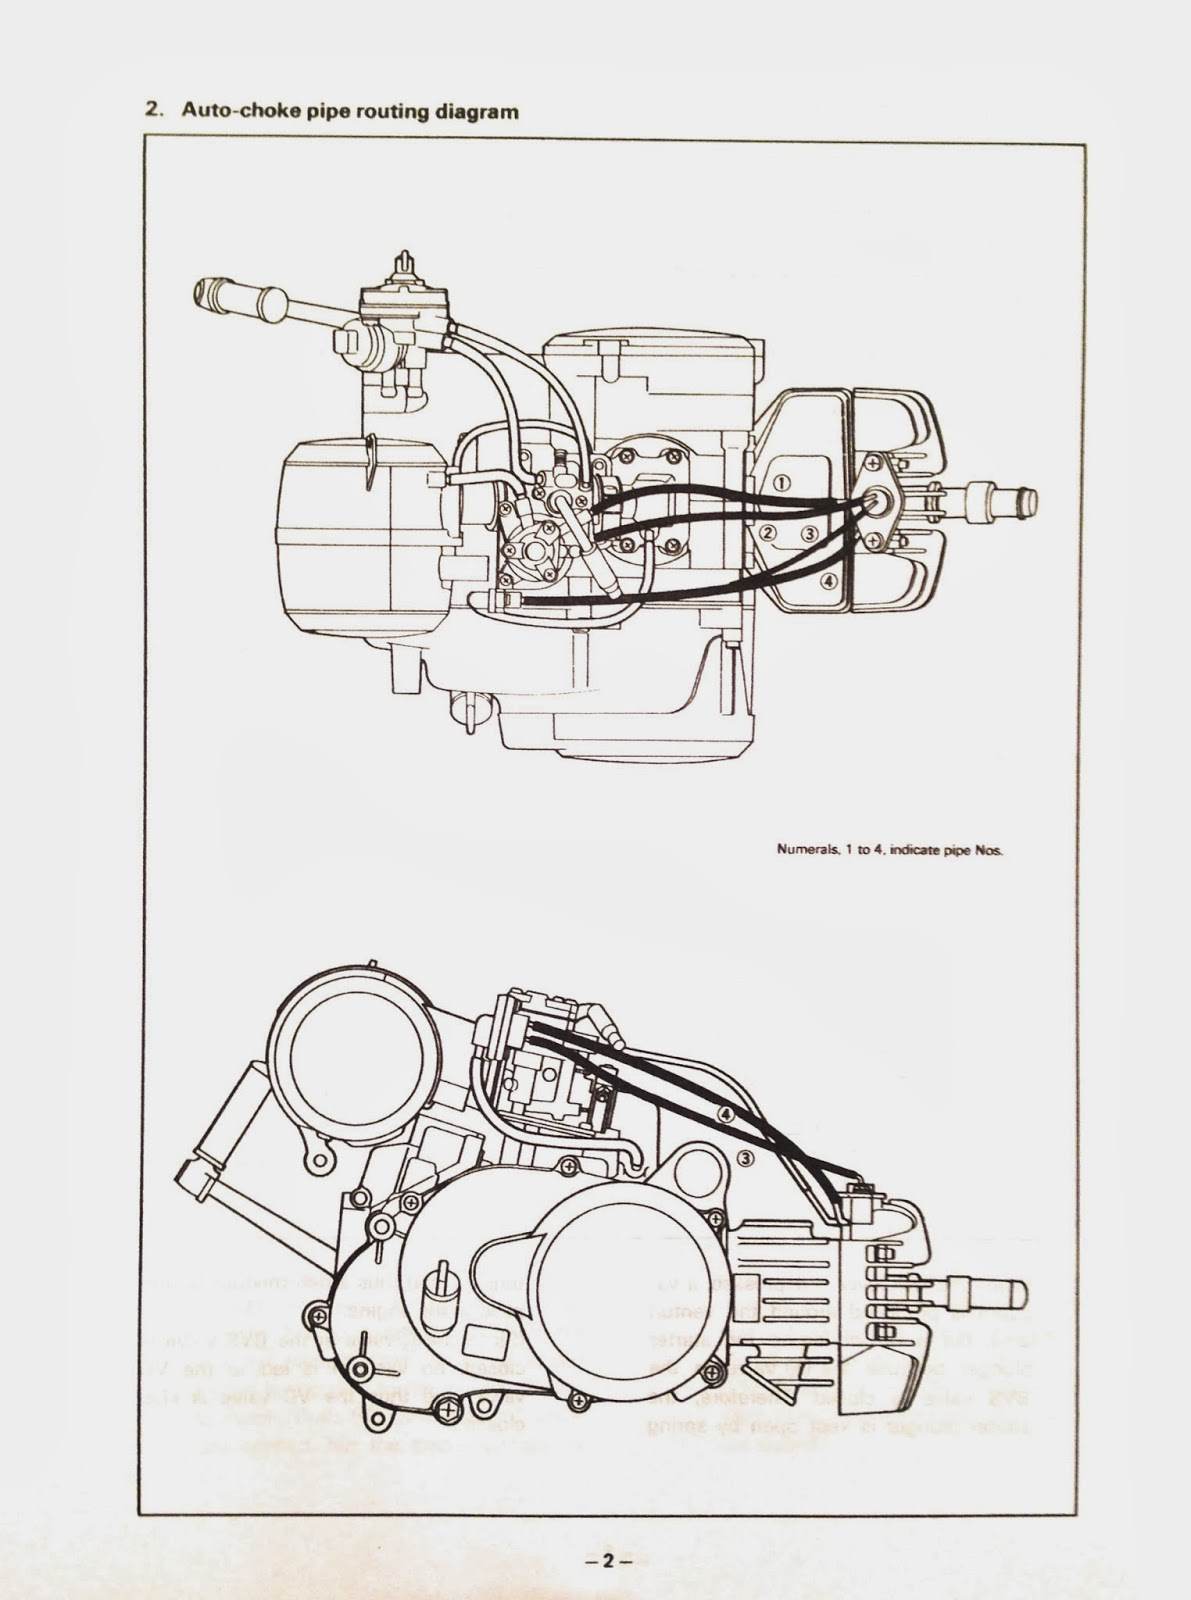 Yamaha dt 50 lc service manual